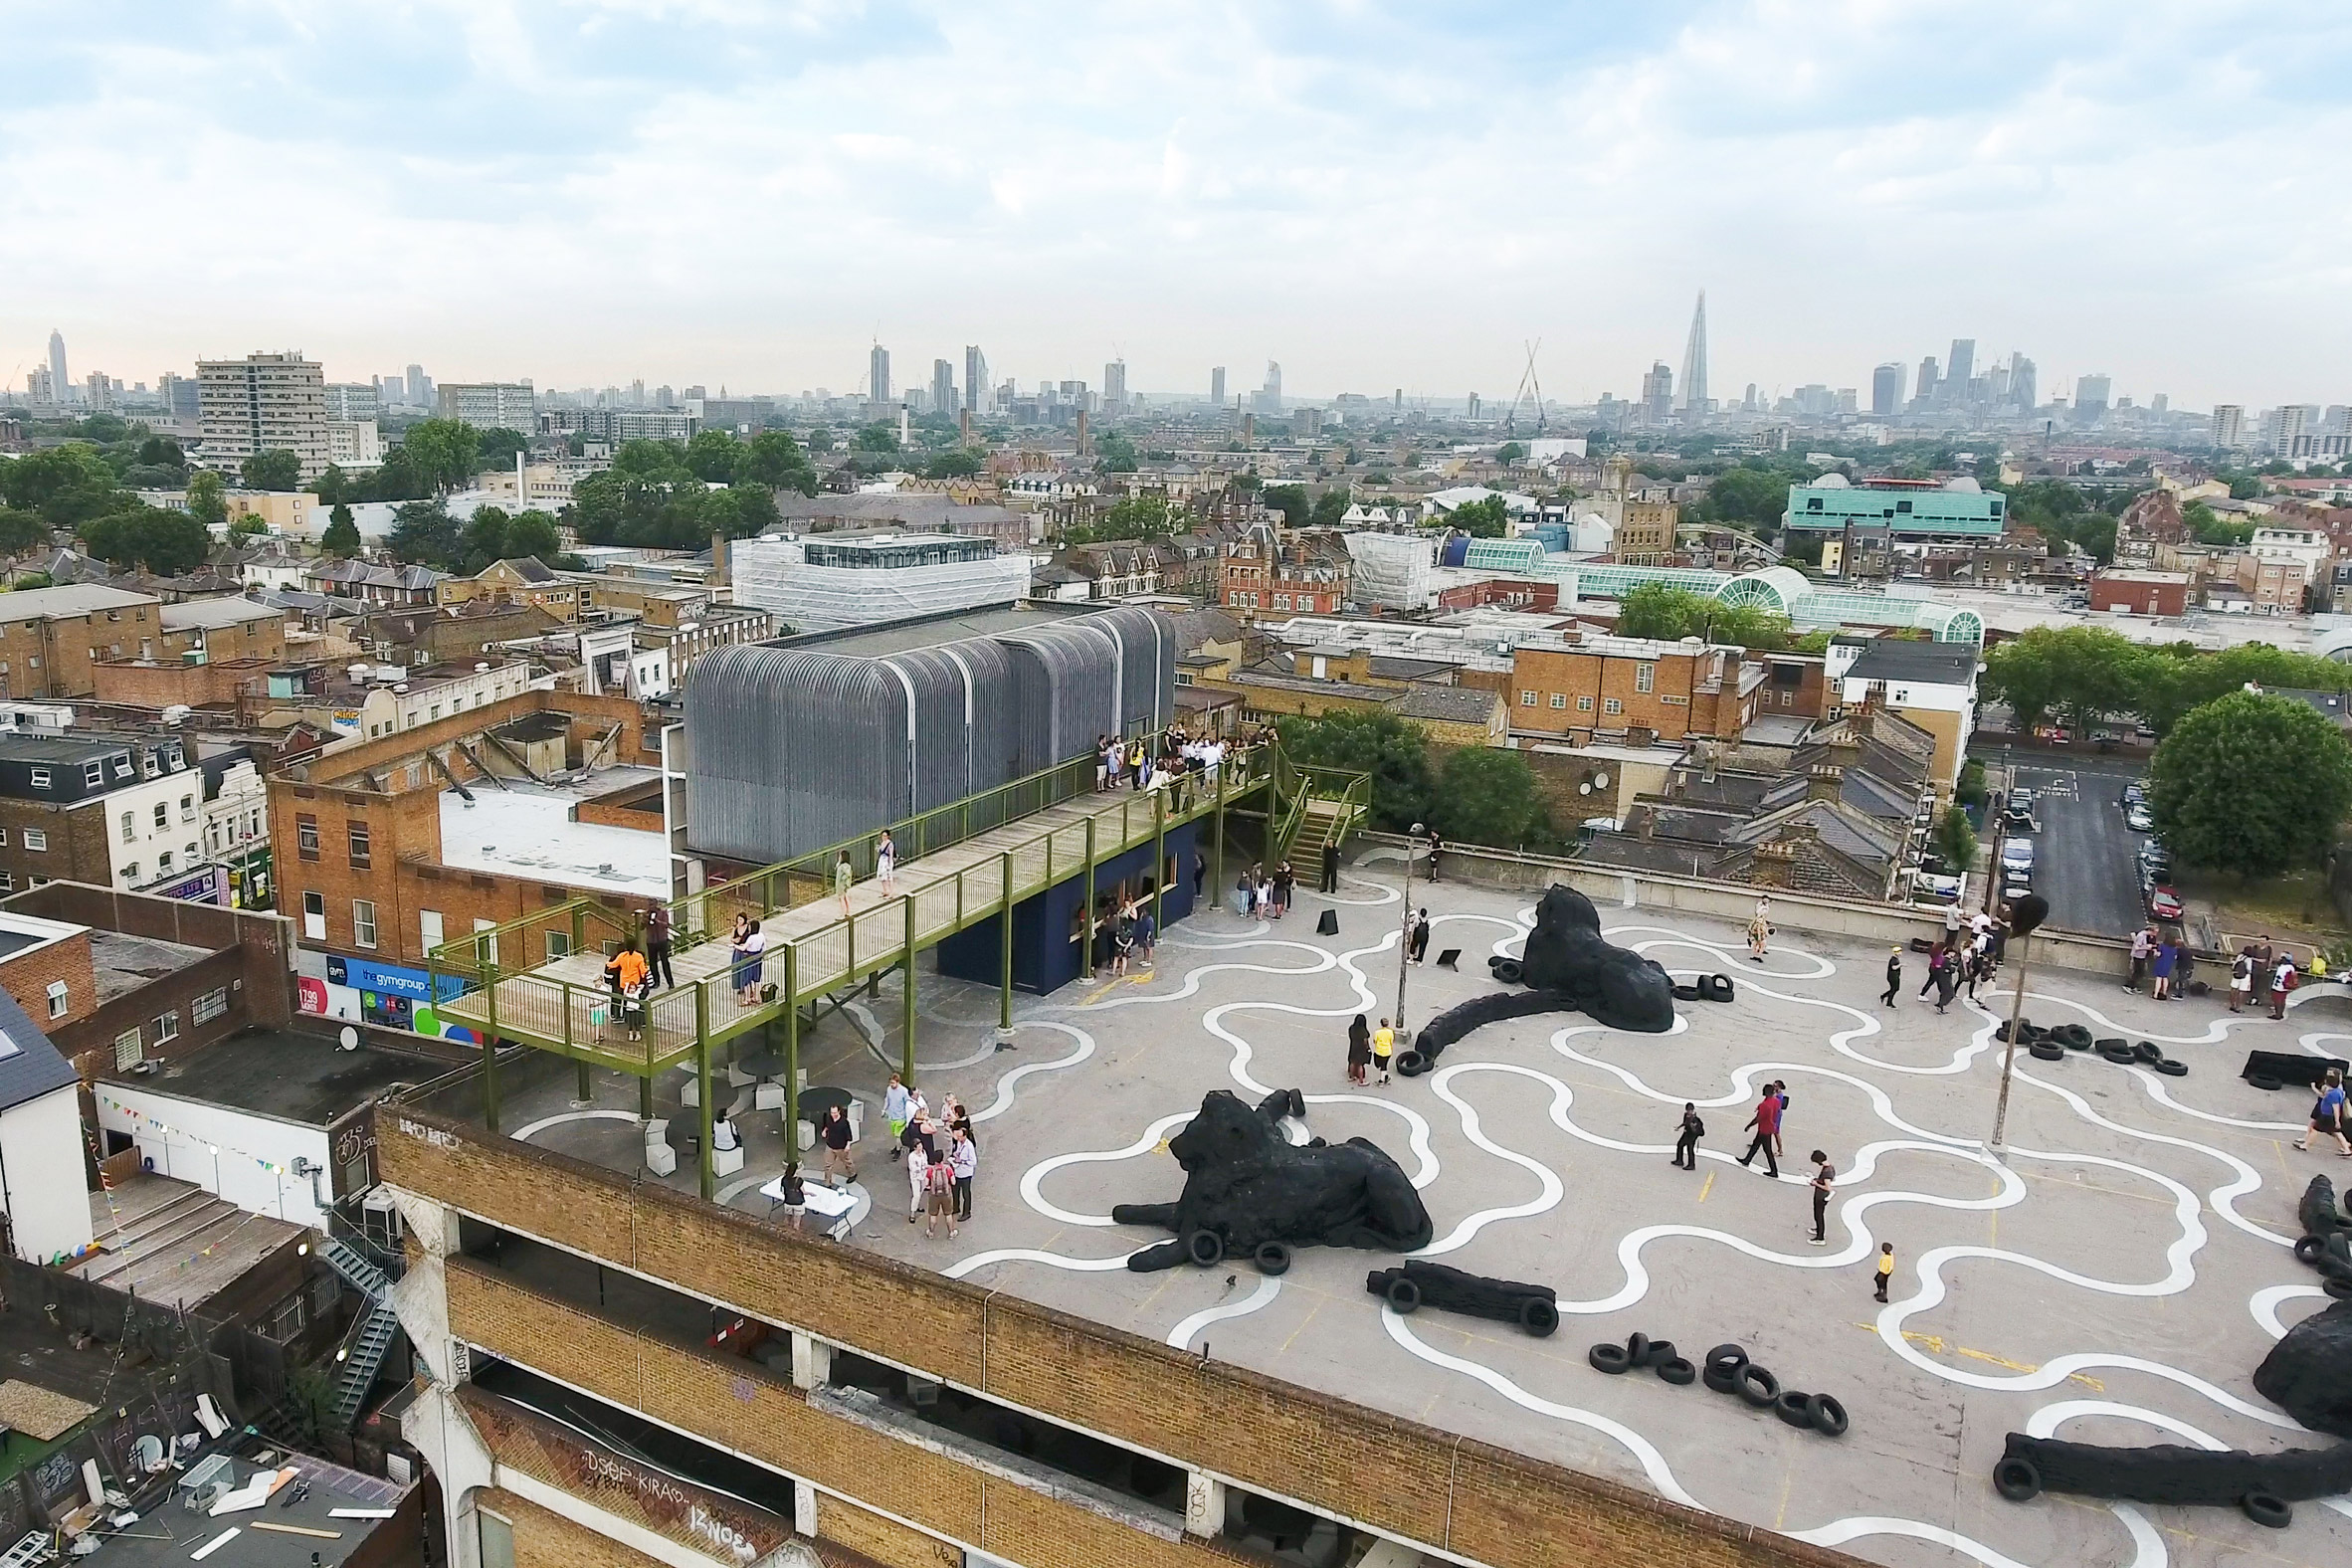 Cooke Fawcett's rooftop observatory gives views of London's skyline from above a Peckham car park